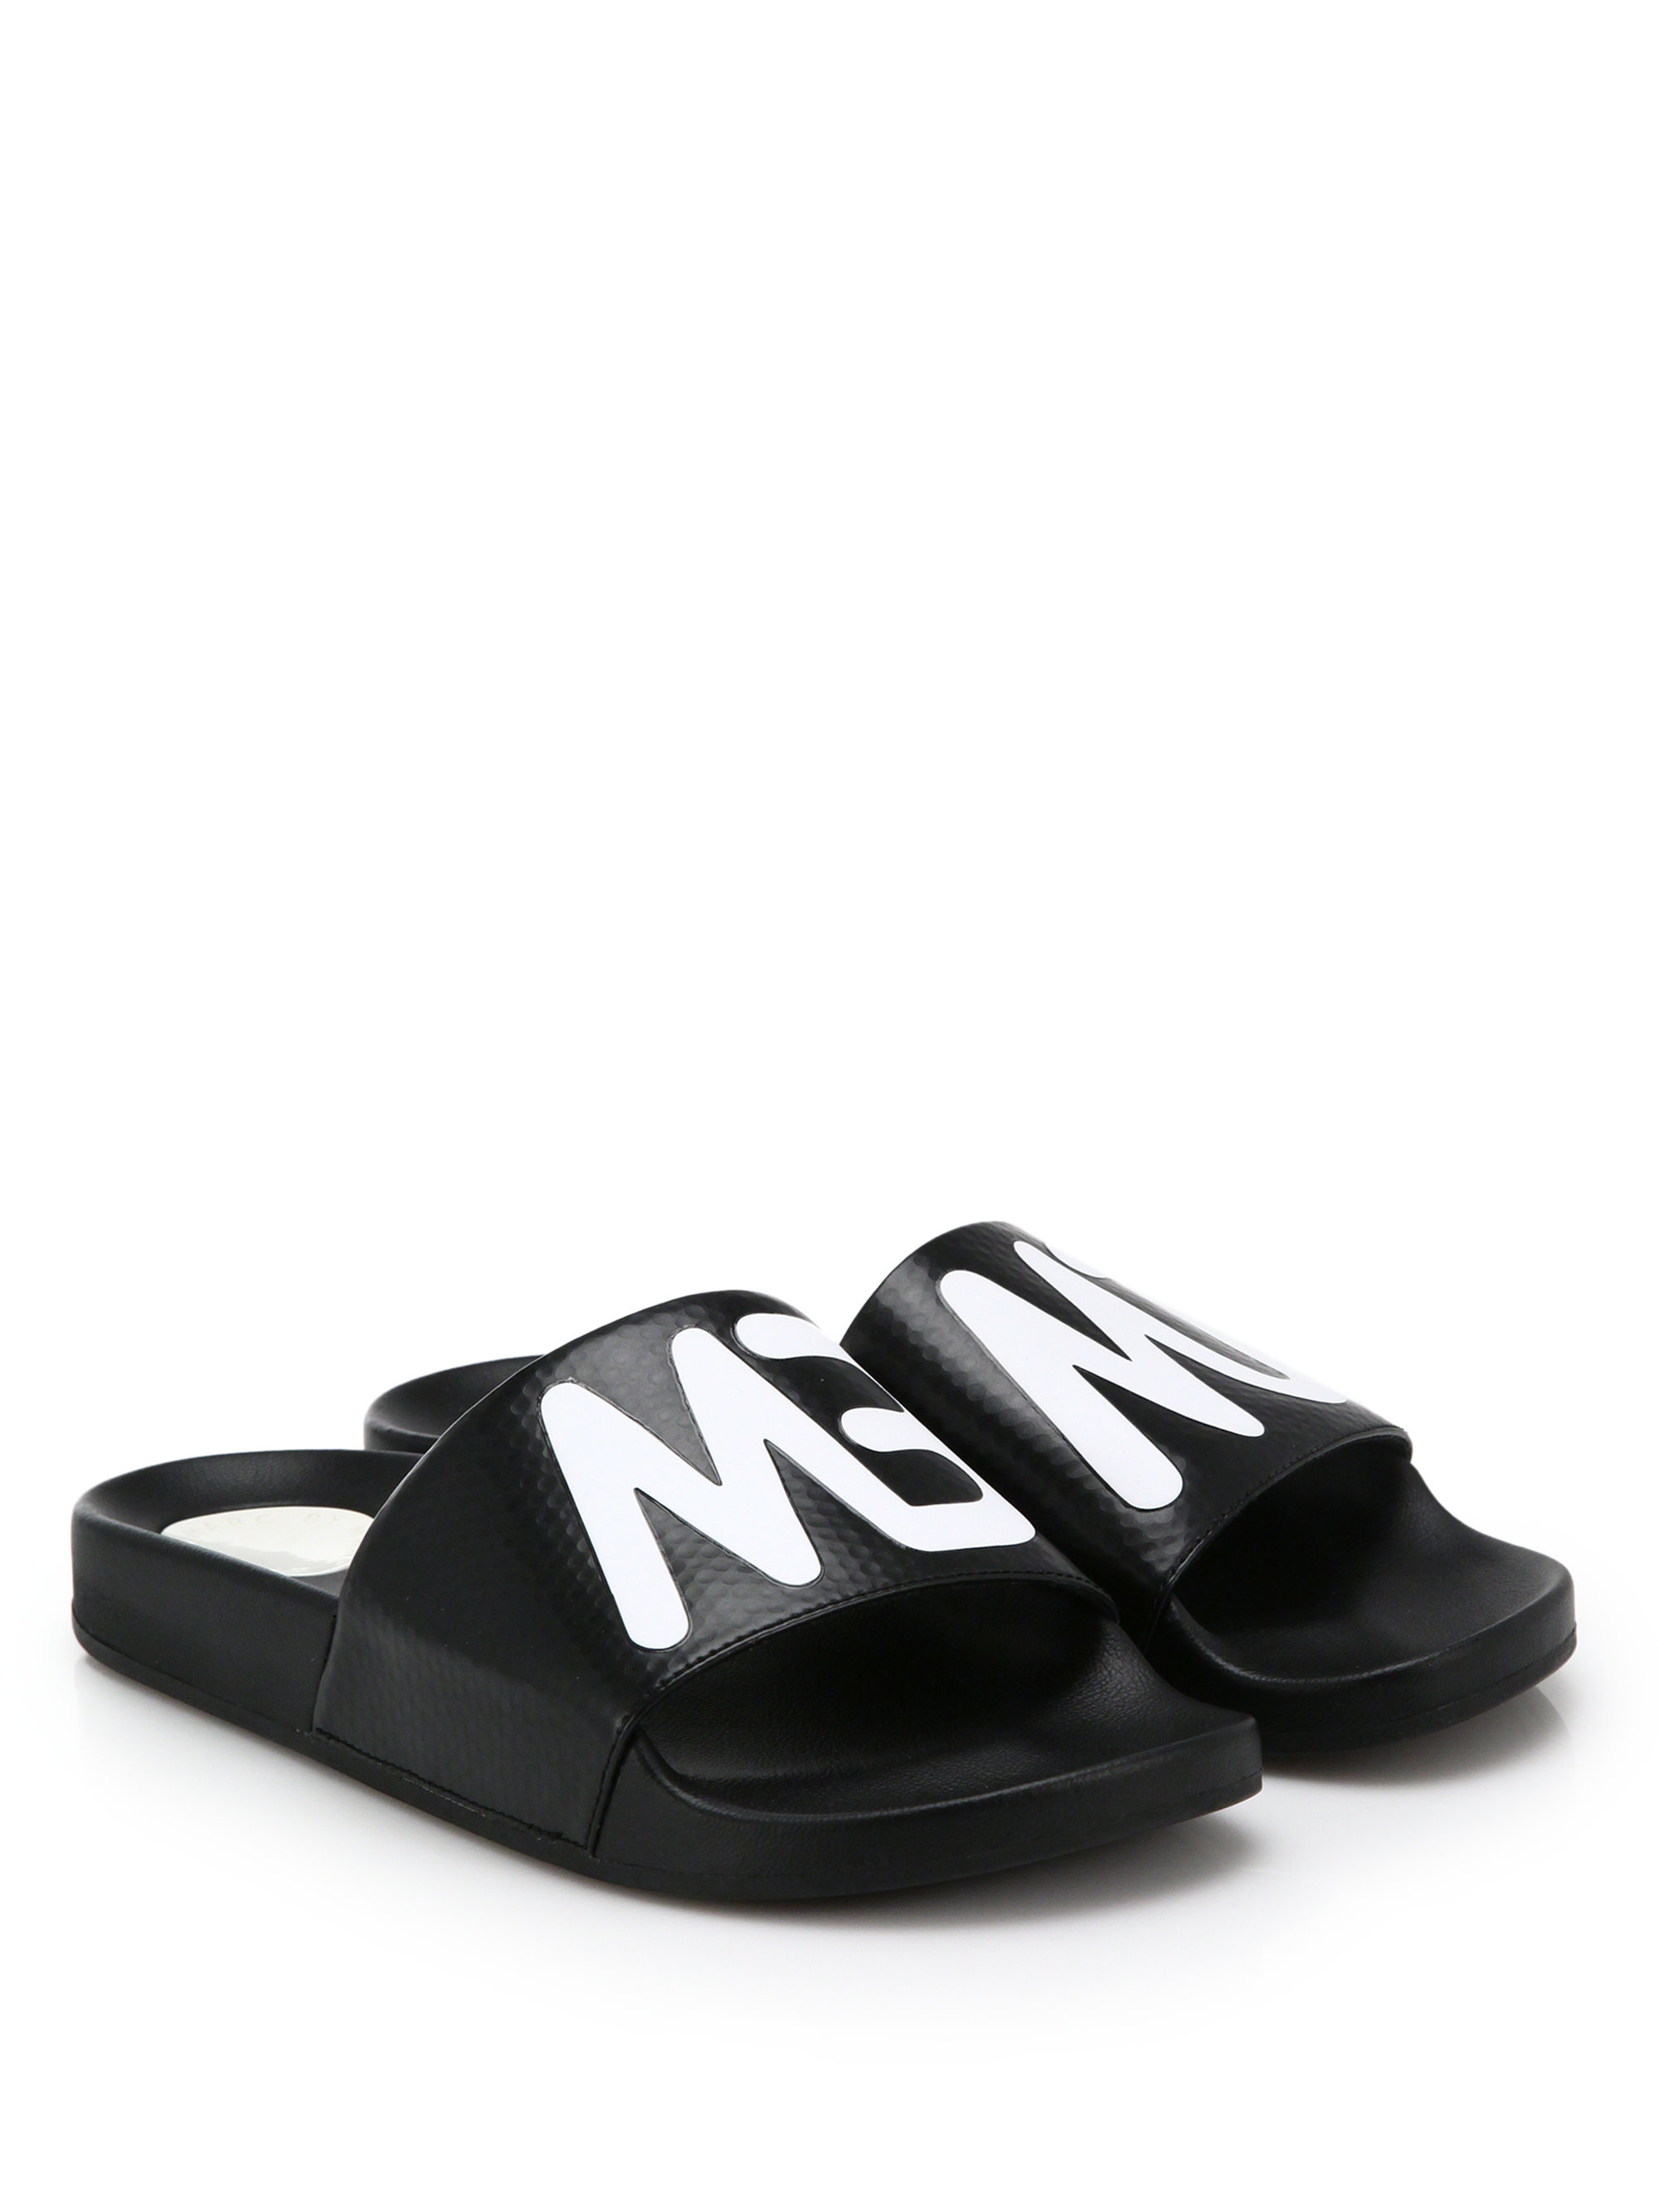 cheapest price online outlet discount sale Marc Jacobs Suede Slide Sandals the cheapest for sale sale excellent 2015 cheap price mjEmkEfK